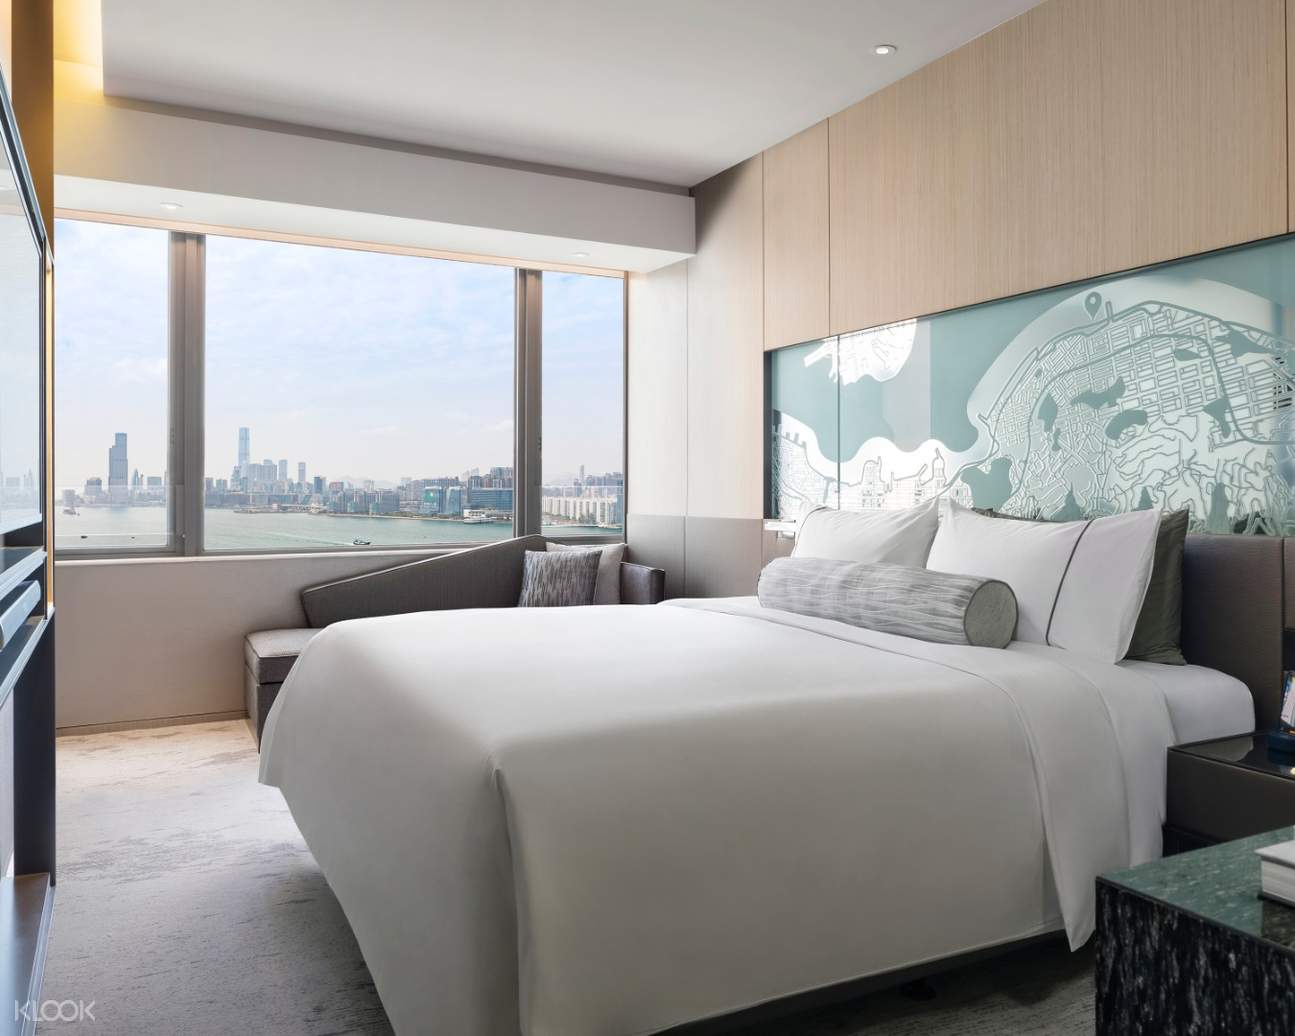 Hyatt Centric Staycation room with a view